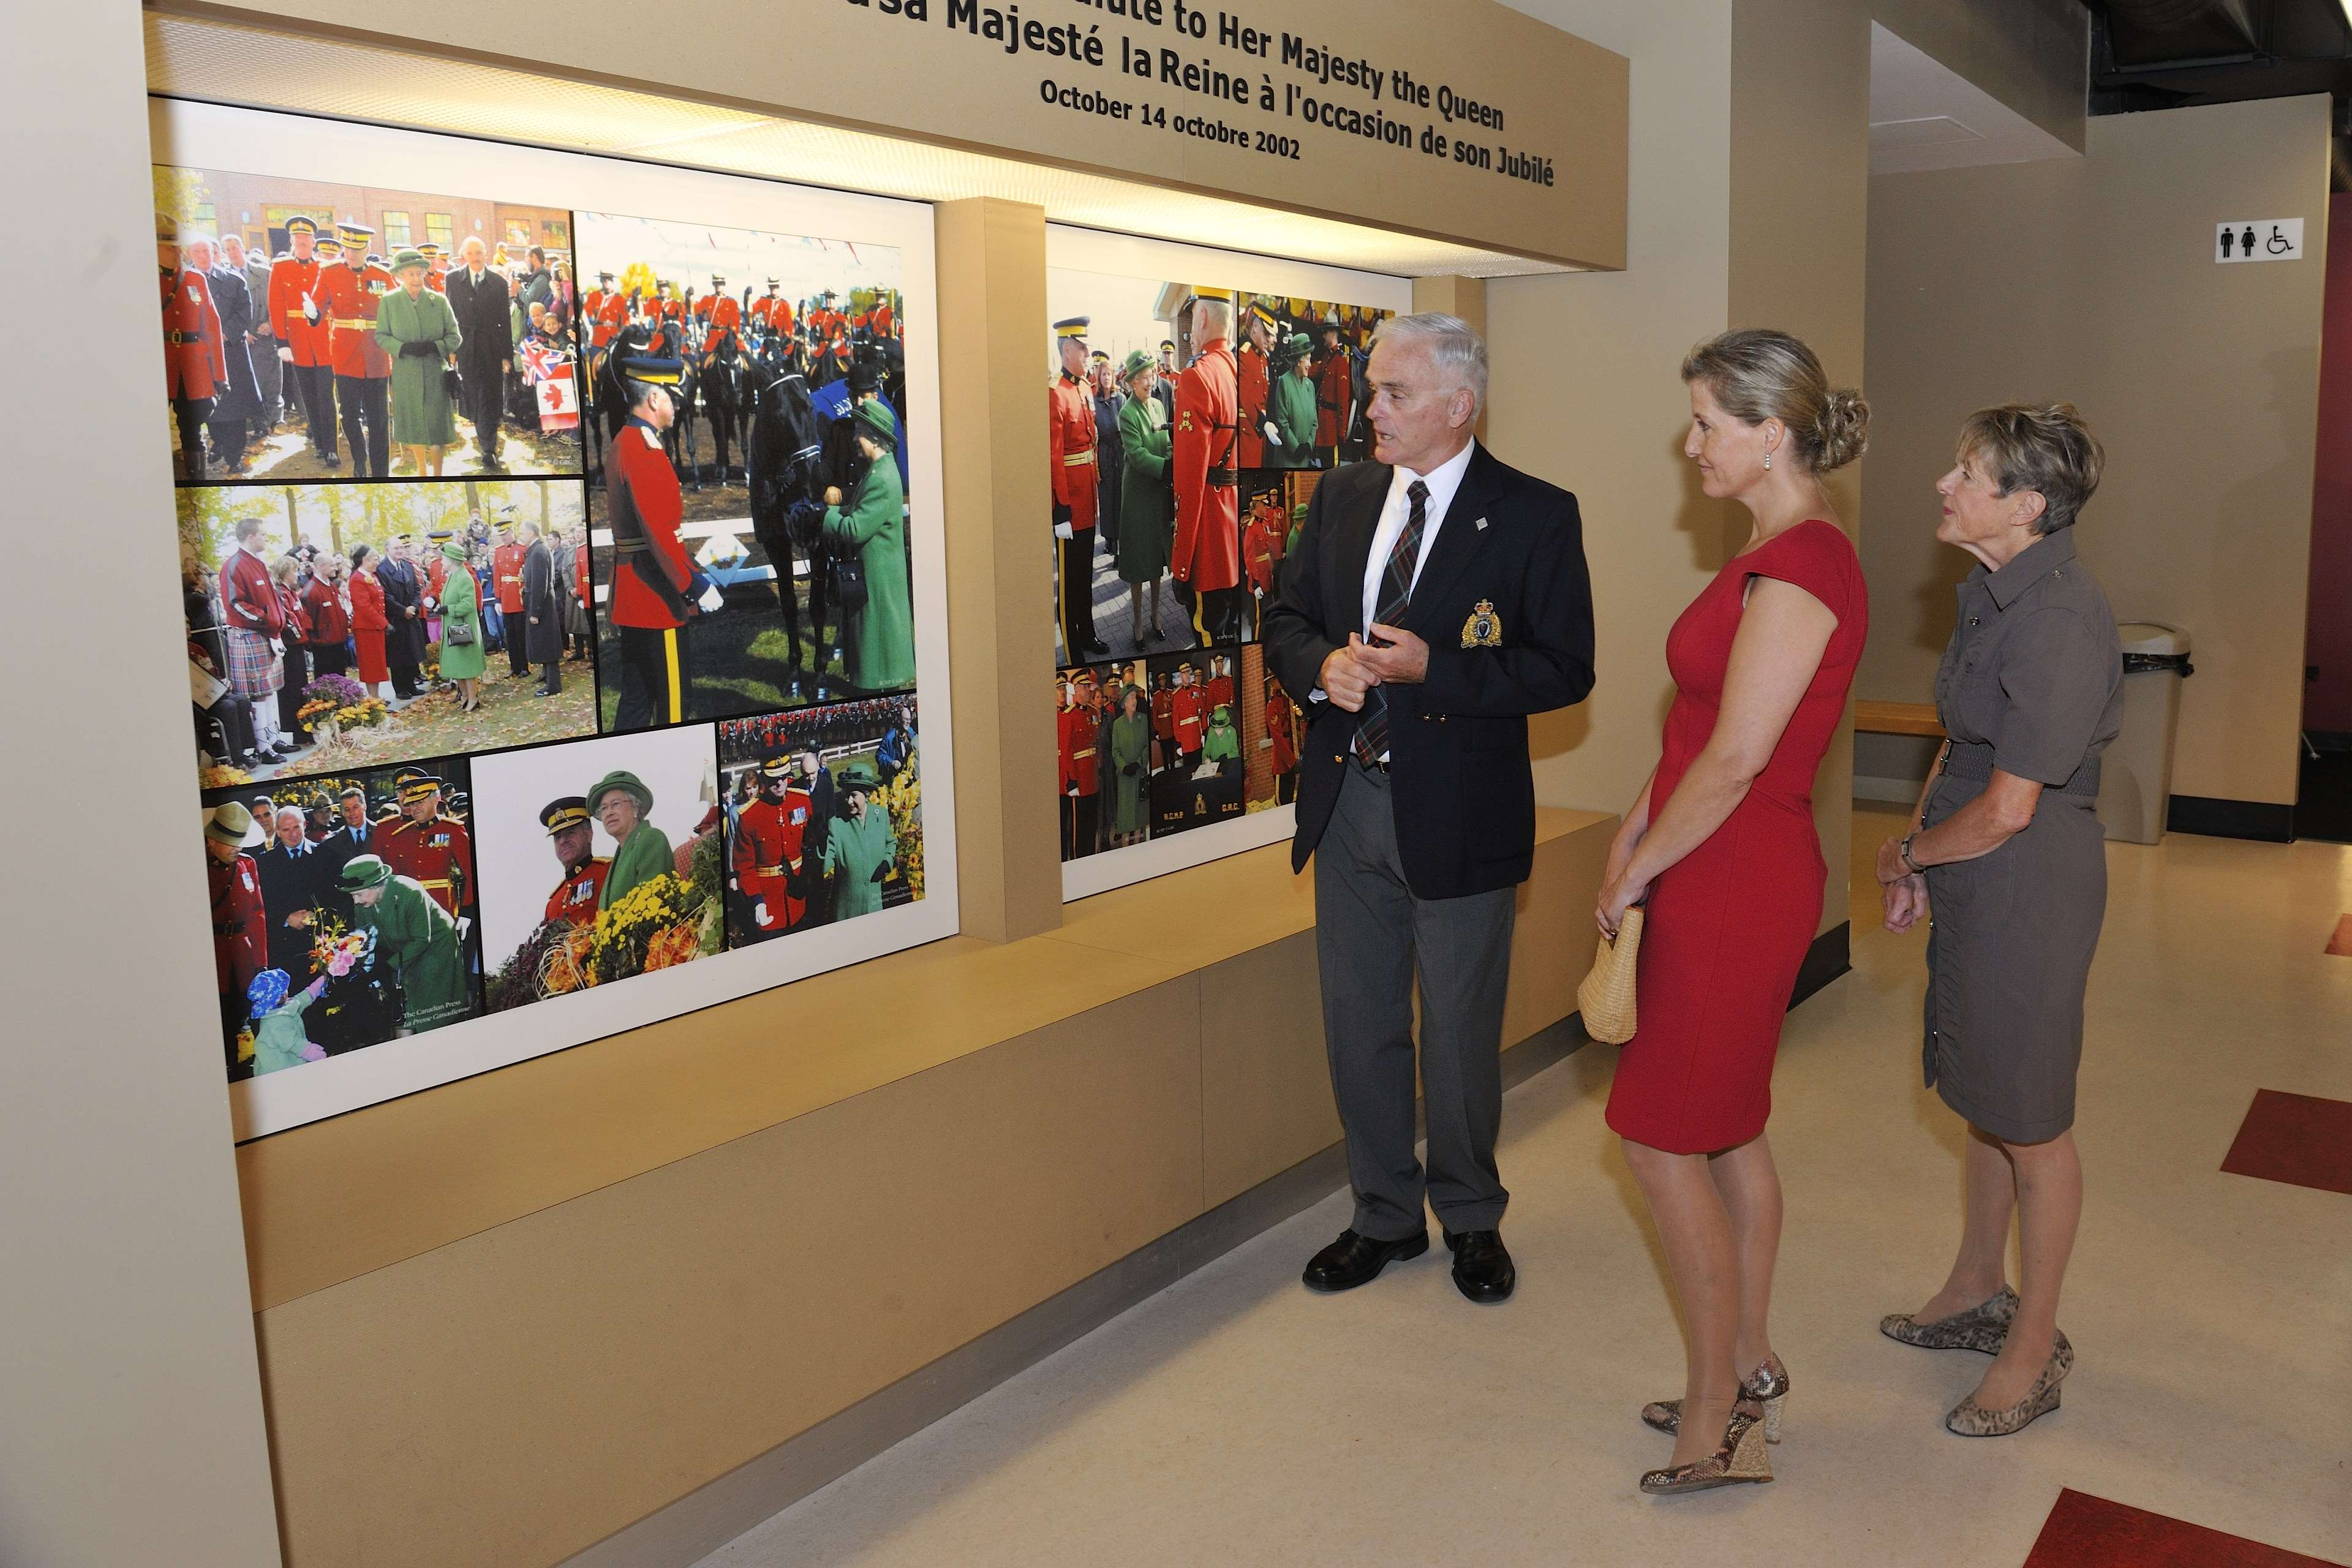 During their tour, they looked at photos of the RCMP Musical Ride on the occasion of Her Majesty Queen Elizabeth II's Golden Jubilee Celebrations.